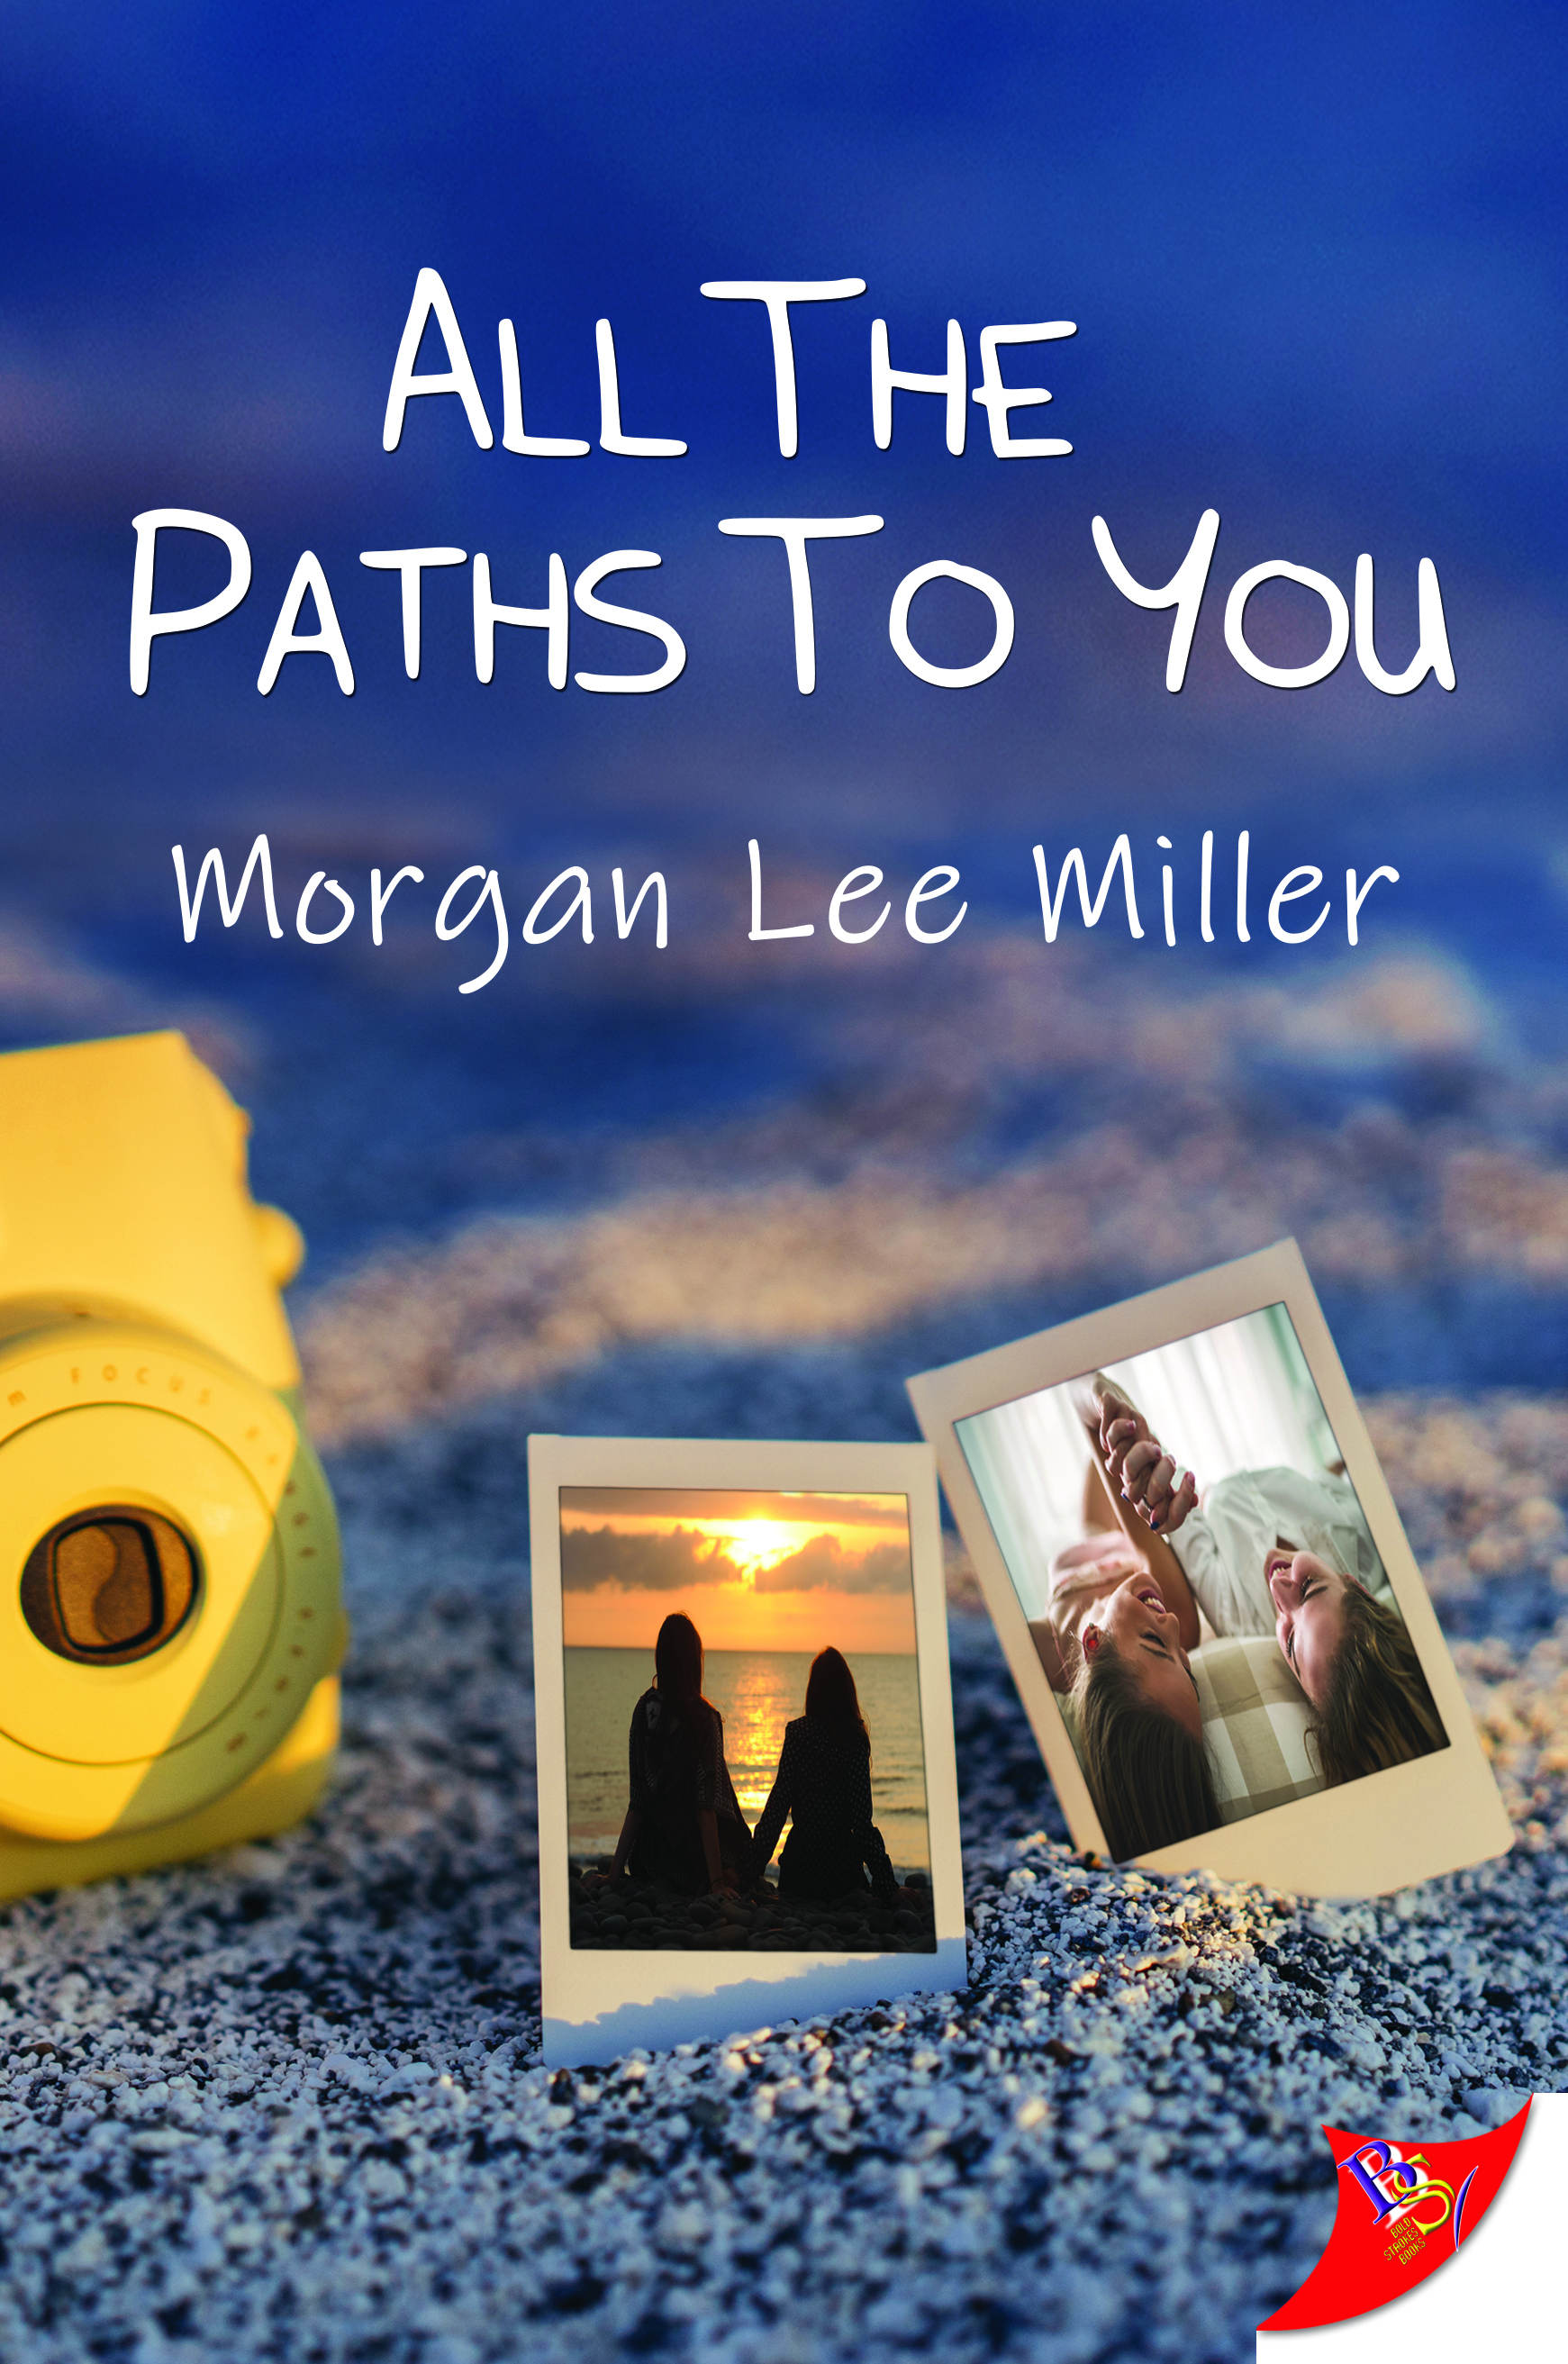 Morgan Lee Miller - All The Paths To You